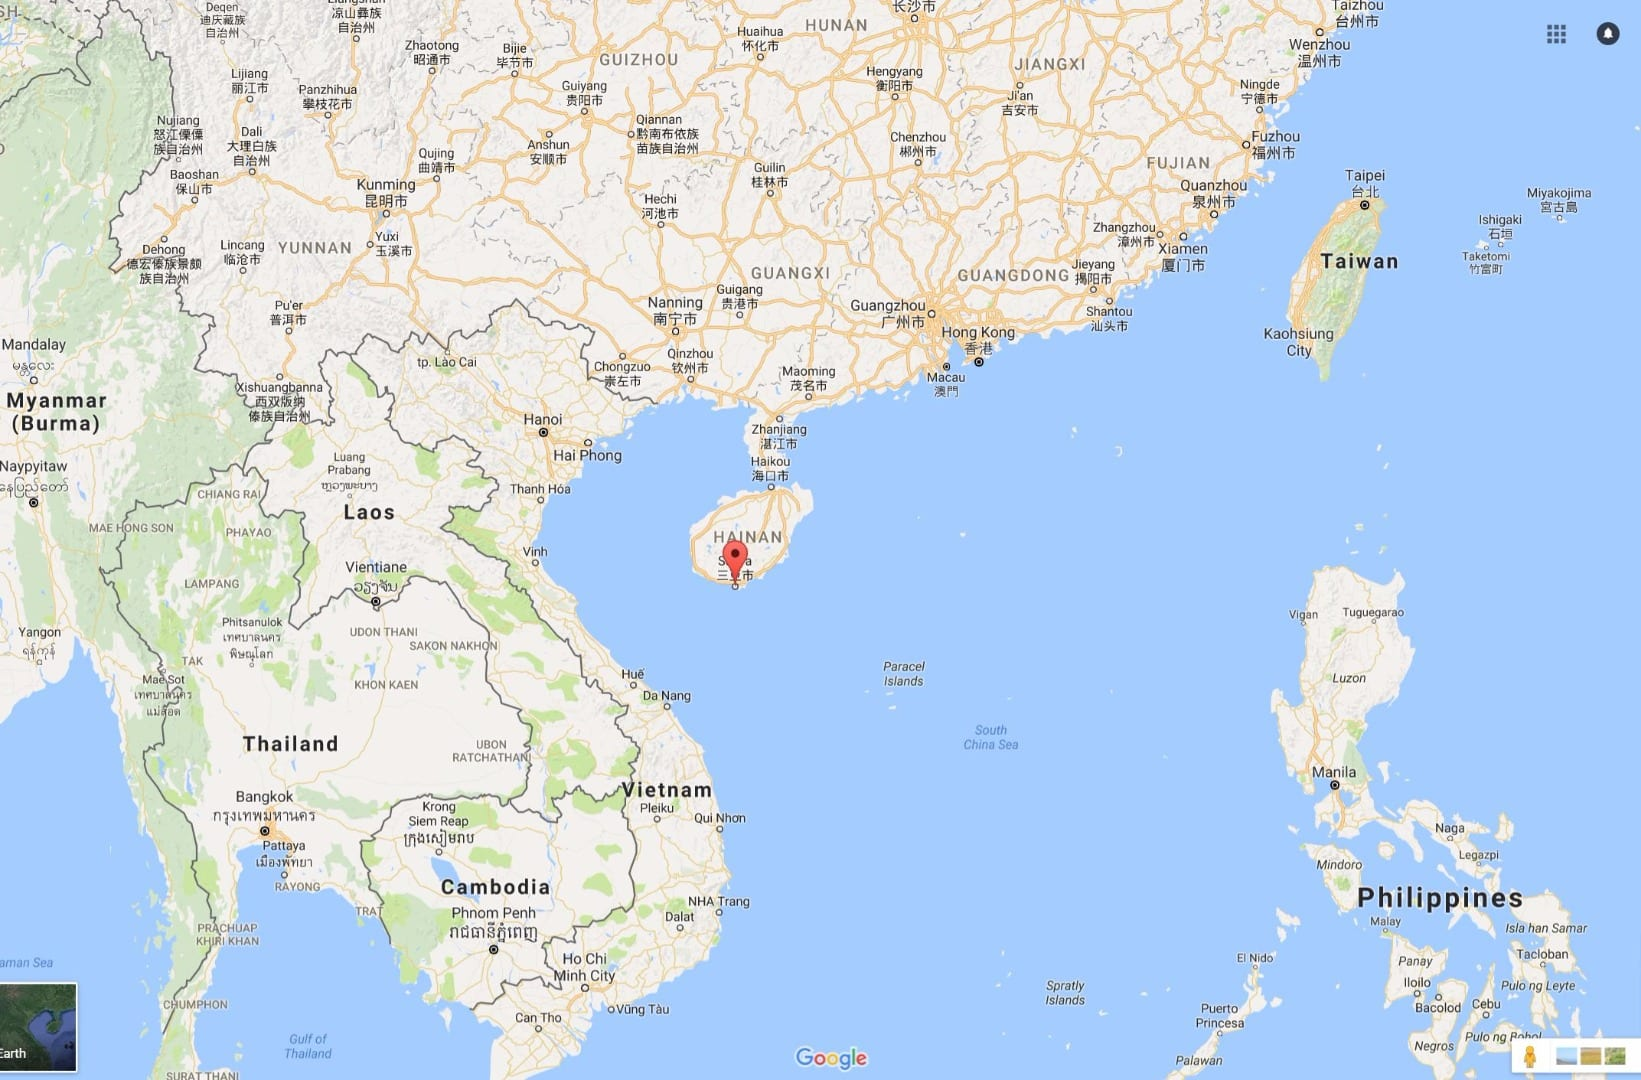 Google map of where Sanya is in China, new sister city of Blackpool